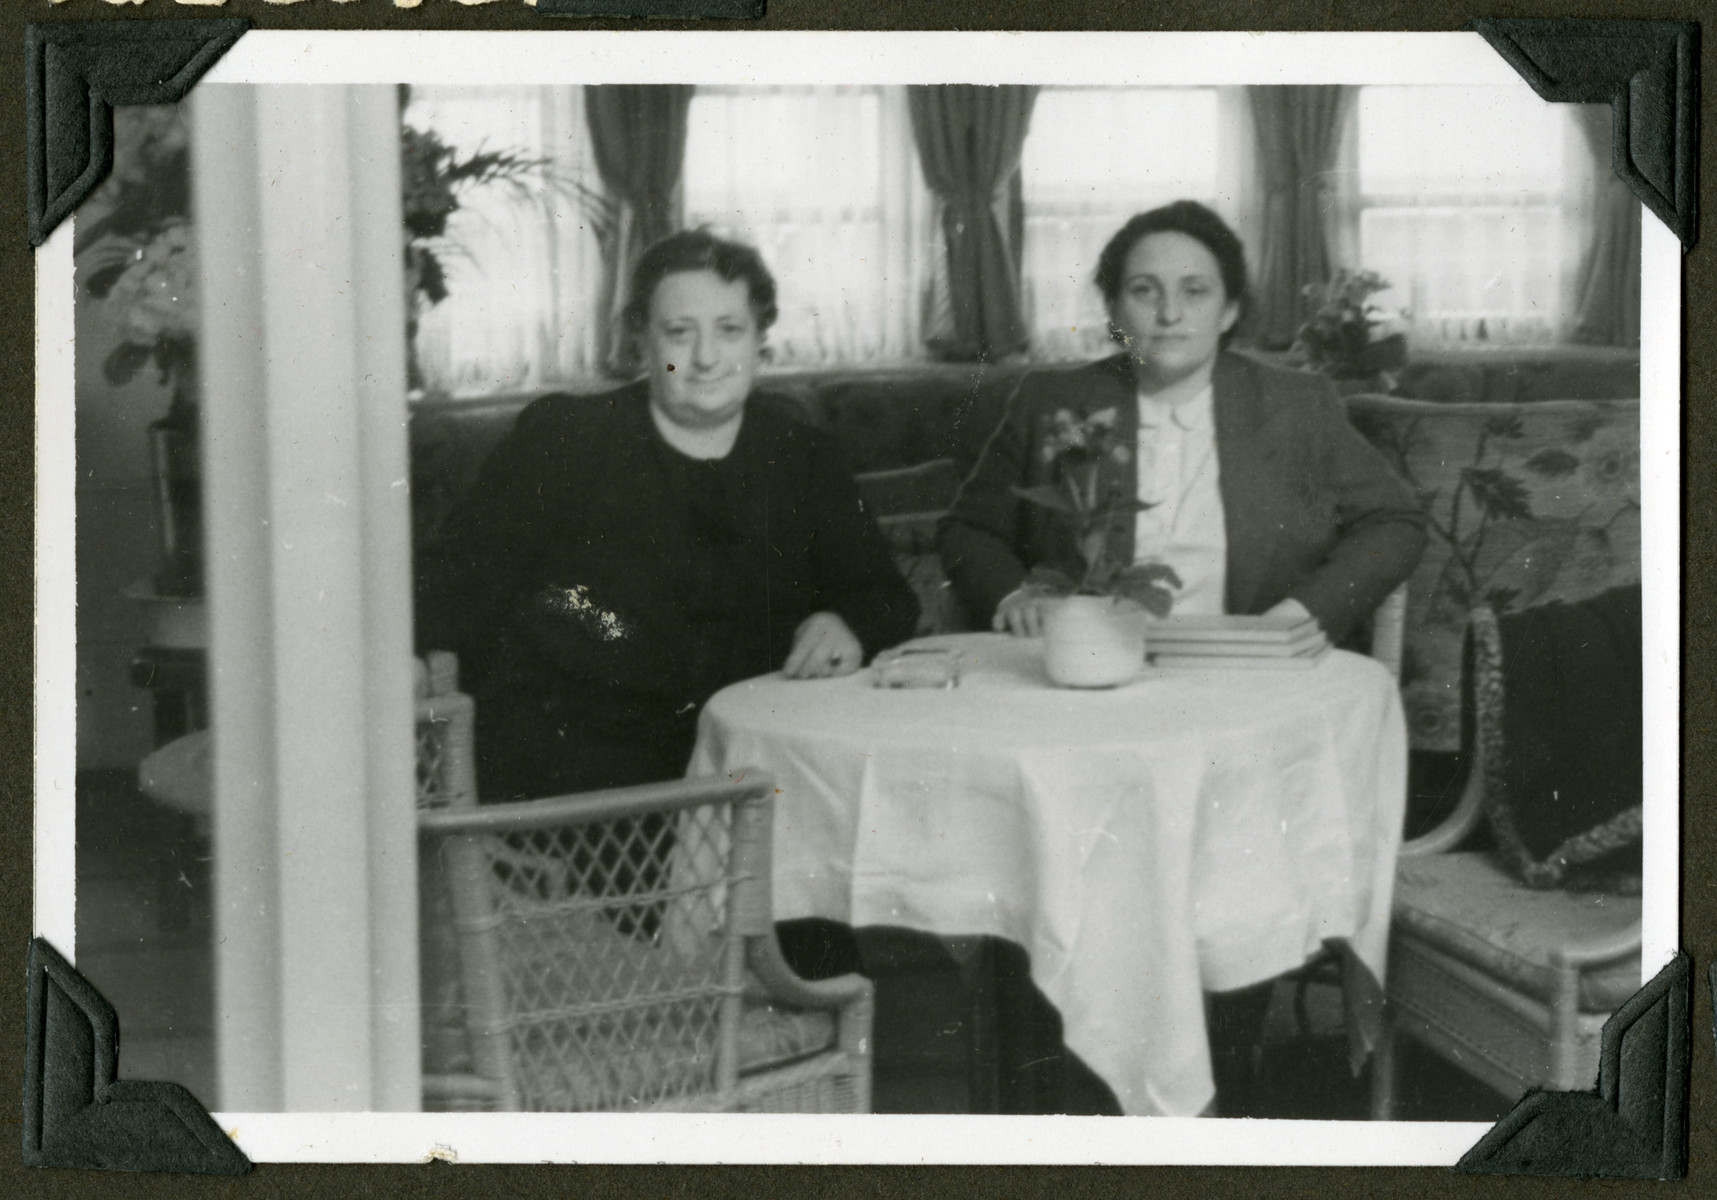 Olga Abraham and Hannie Reinsch sit at a table in either Cuba or the States after emigrating from Germany.